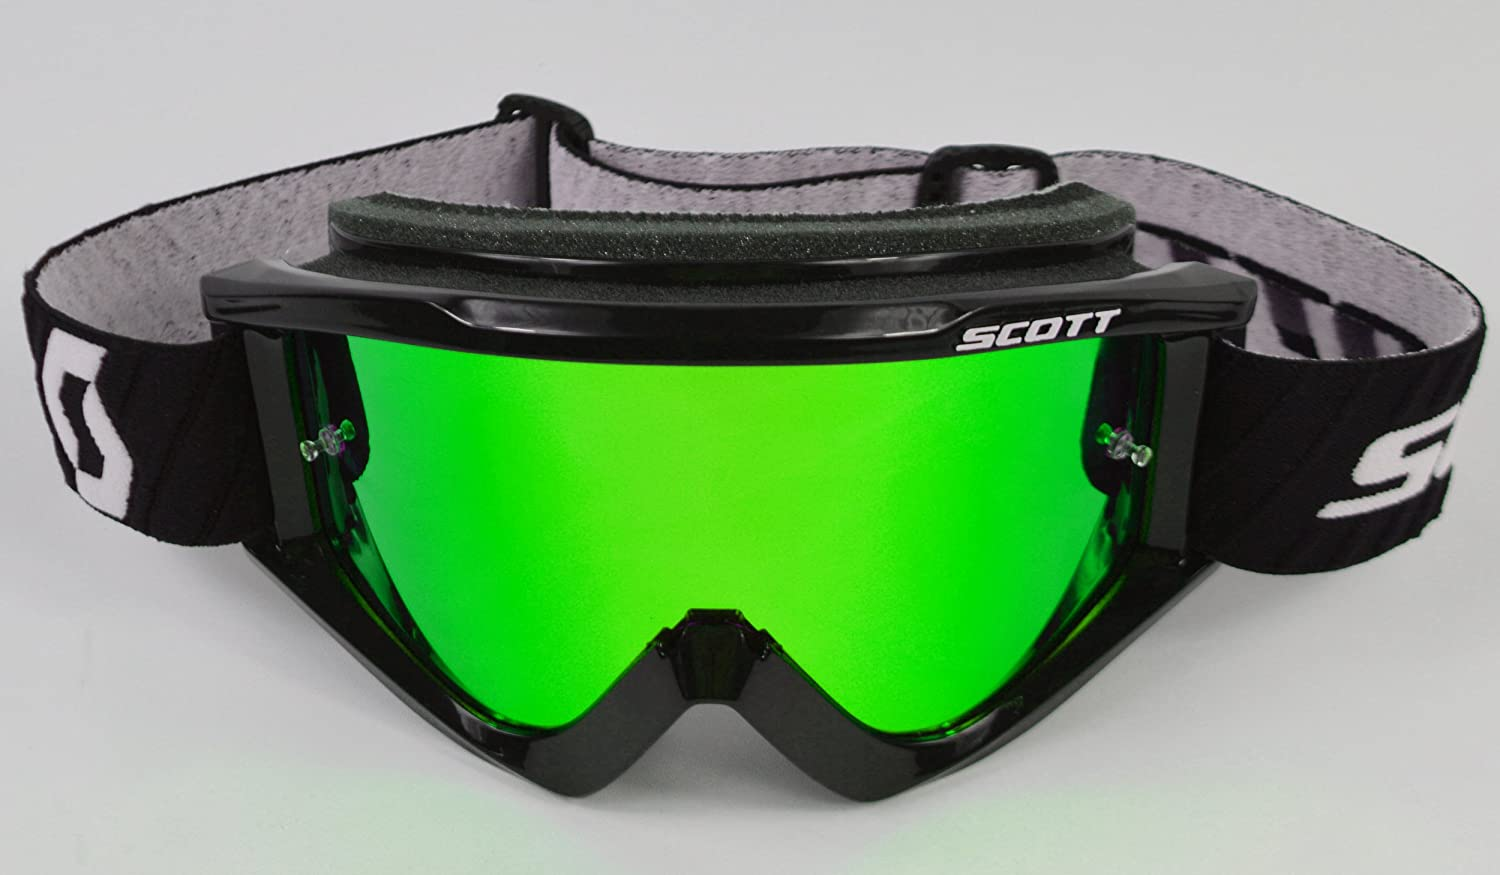 Goggle-Shop Spiegelglas f/ür Scott 80s 89 Recoil Motocross MX Brille